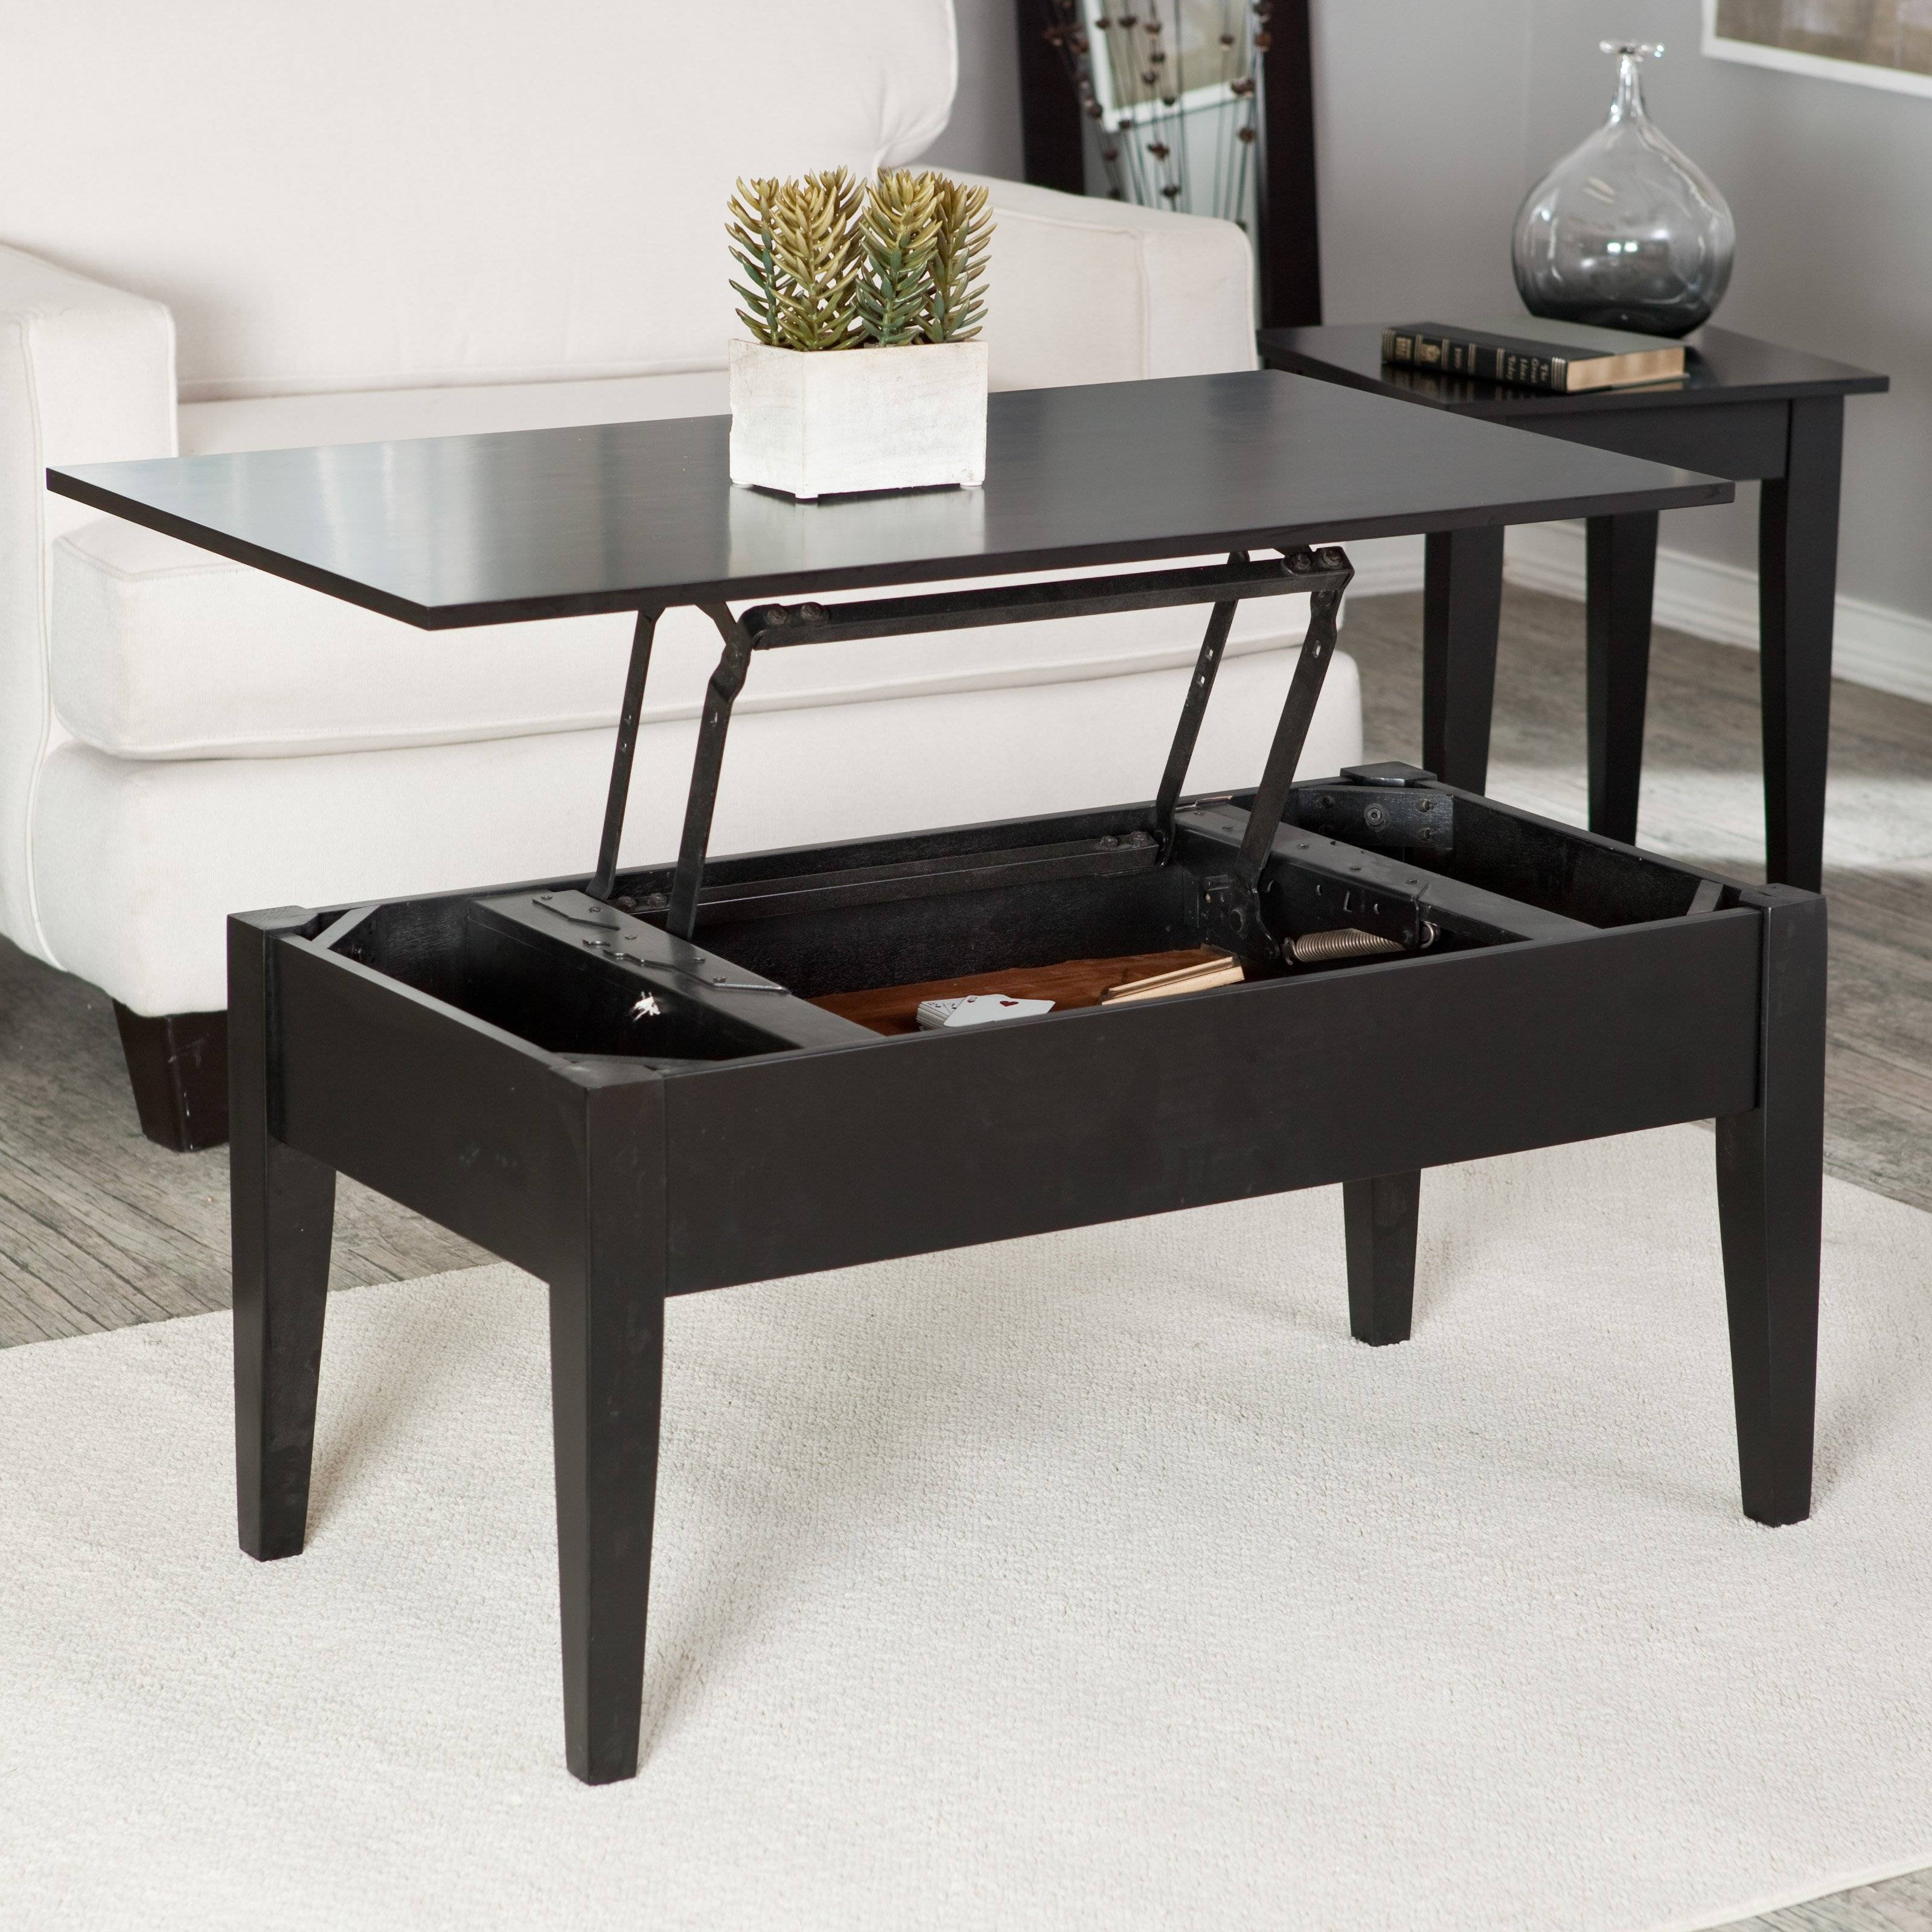 Turner Lift Top Coffee Table - Espresso | Hayneedle within Rising Coffee Tables (Image 29 of 30)